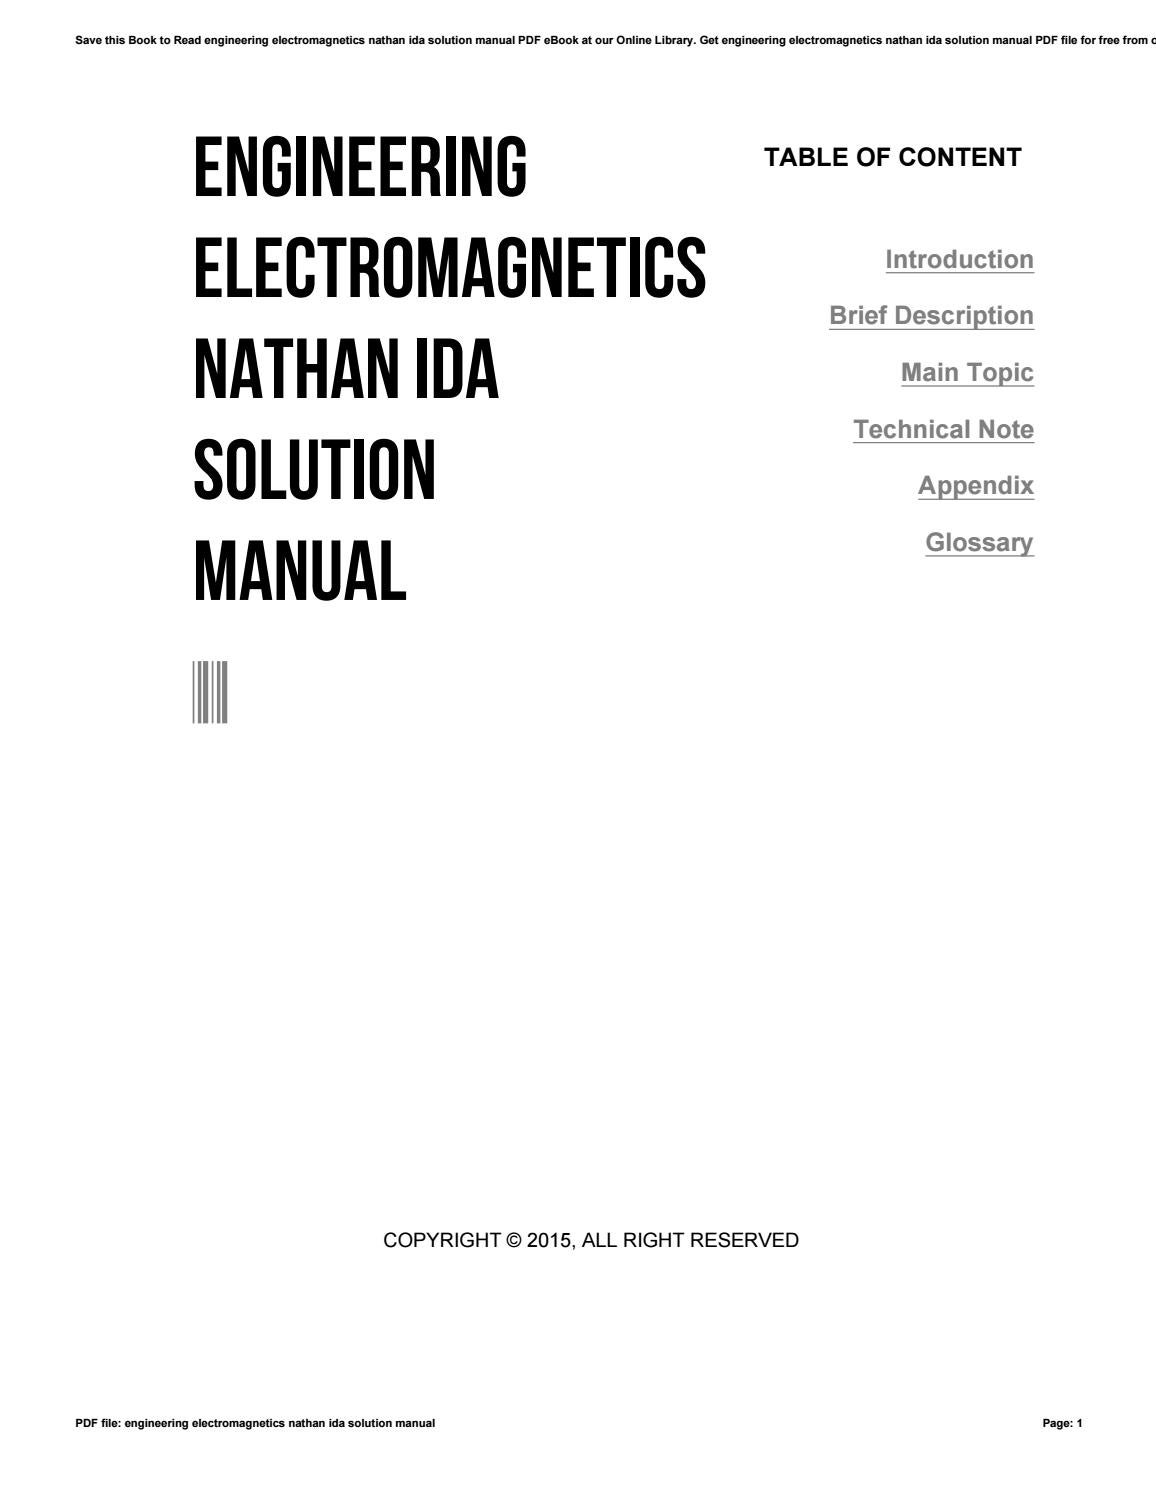 Engineering electromagnetics nathan ida solution manual by